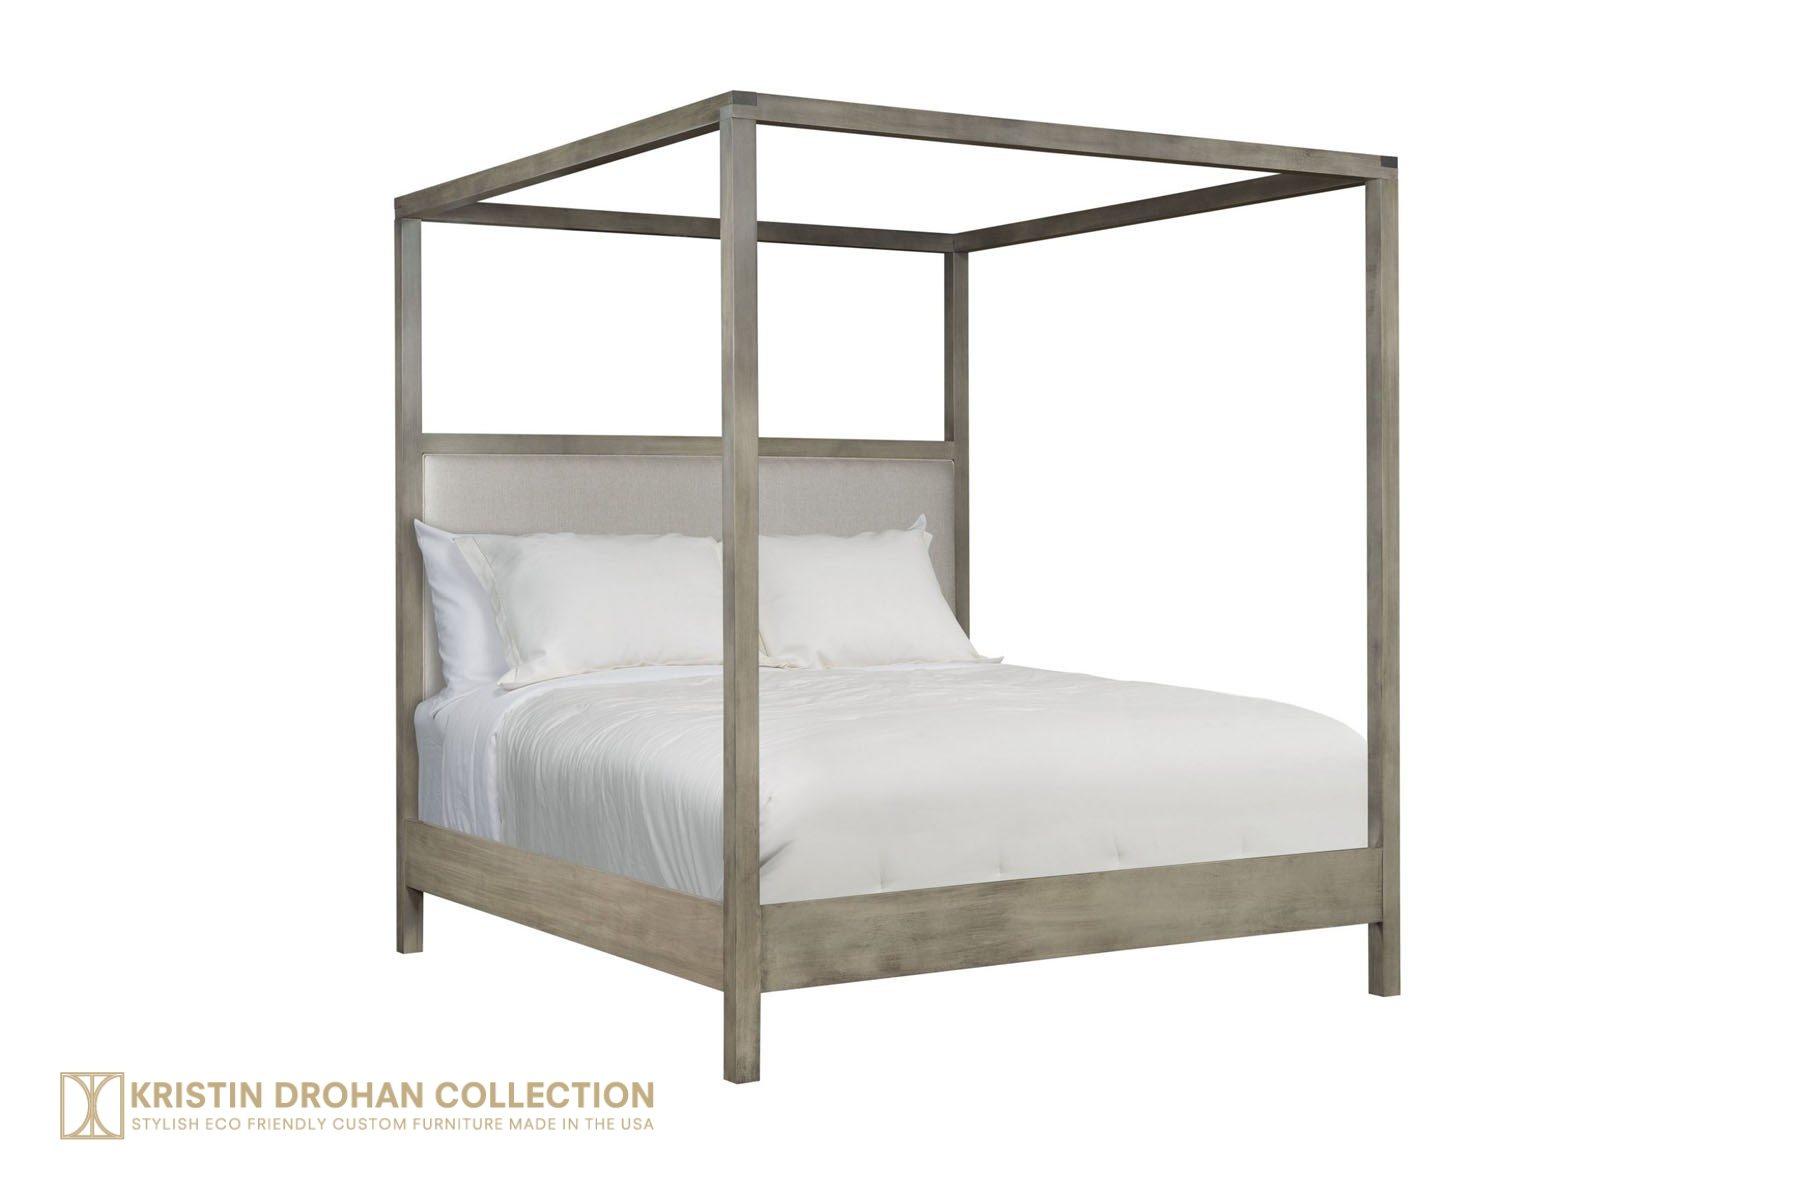 Grayton Canopy Bed Driftwood Finish Evere Hopsack Linen King, Cal King and Queen